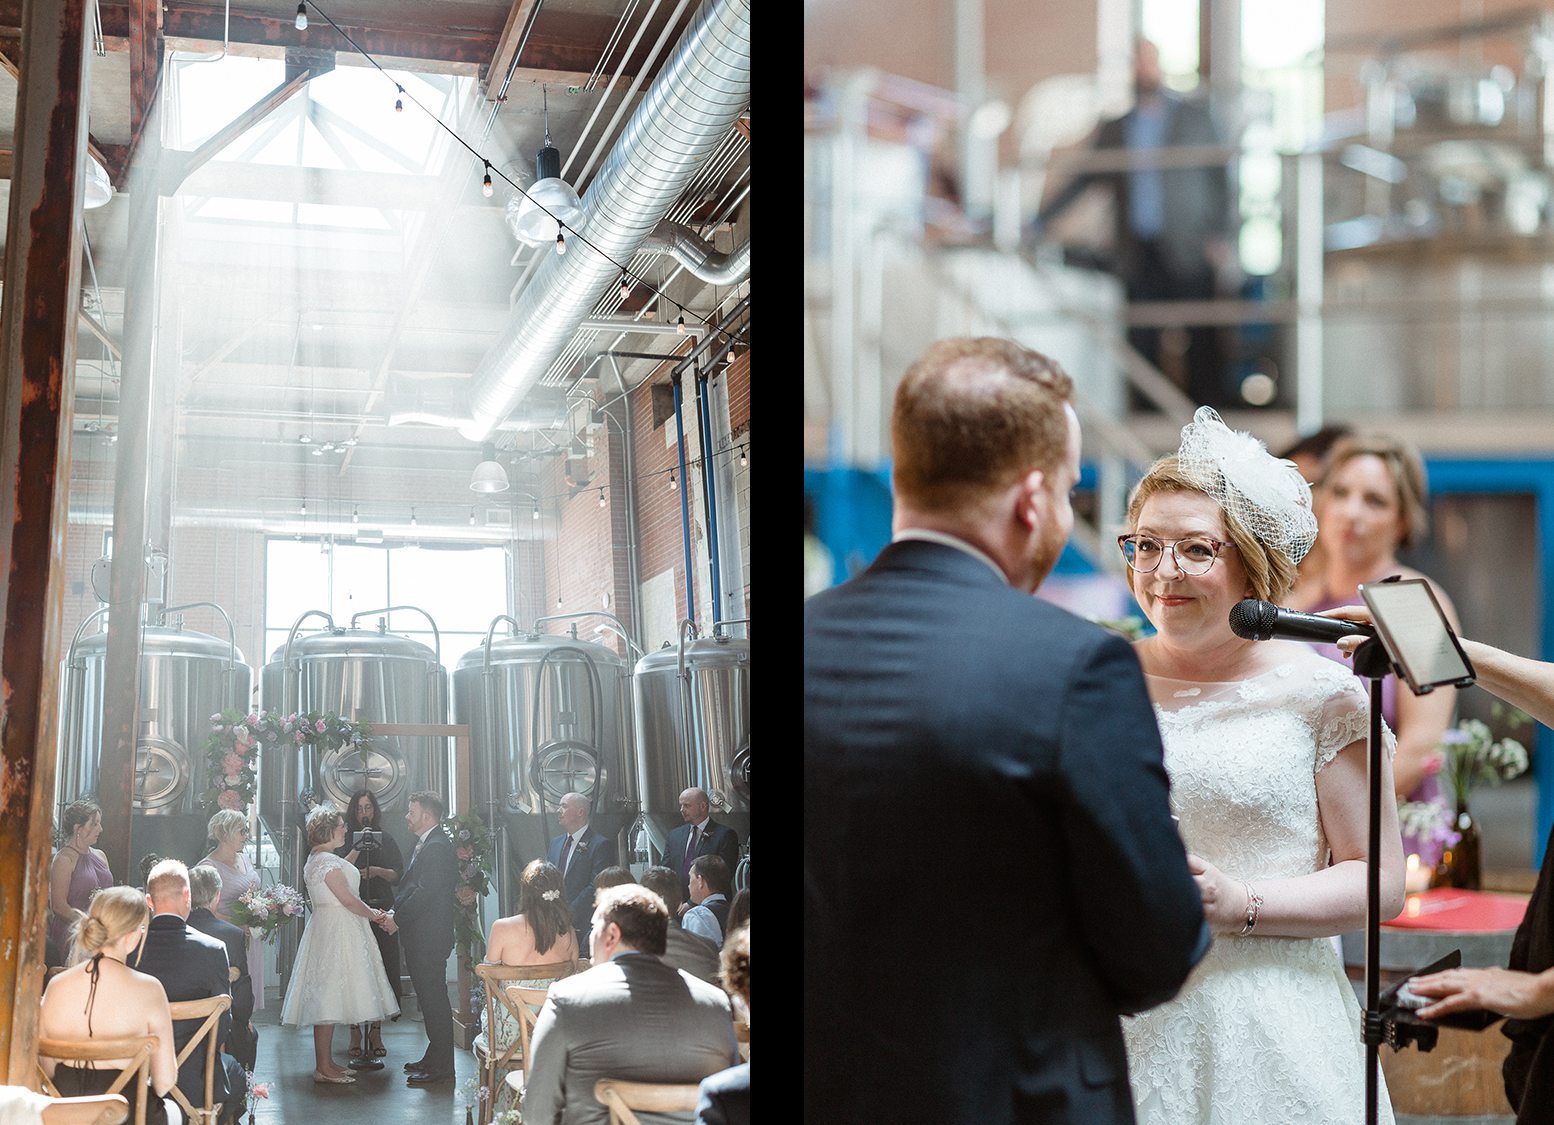 27-Junction-Brewery-Wedding-Photography-Ceremony-2.JPG